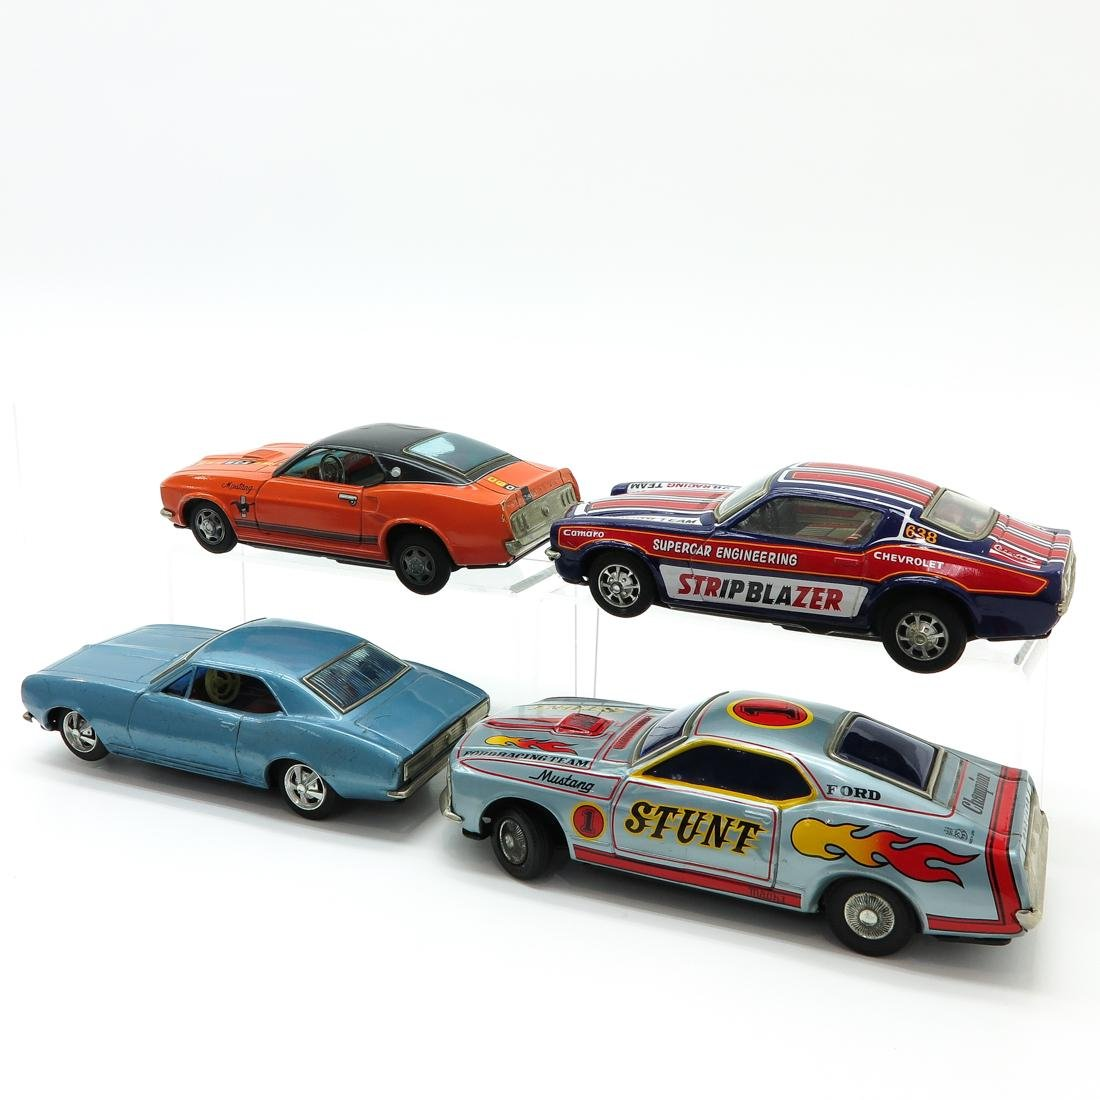 Lot of 4 Vintage Toy Cars - 3